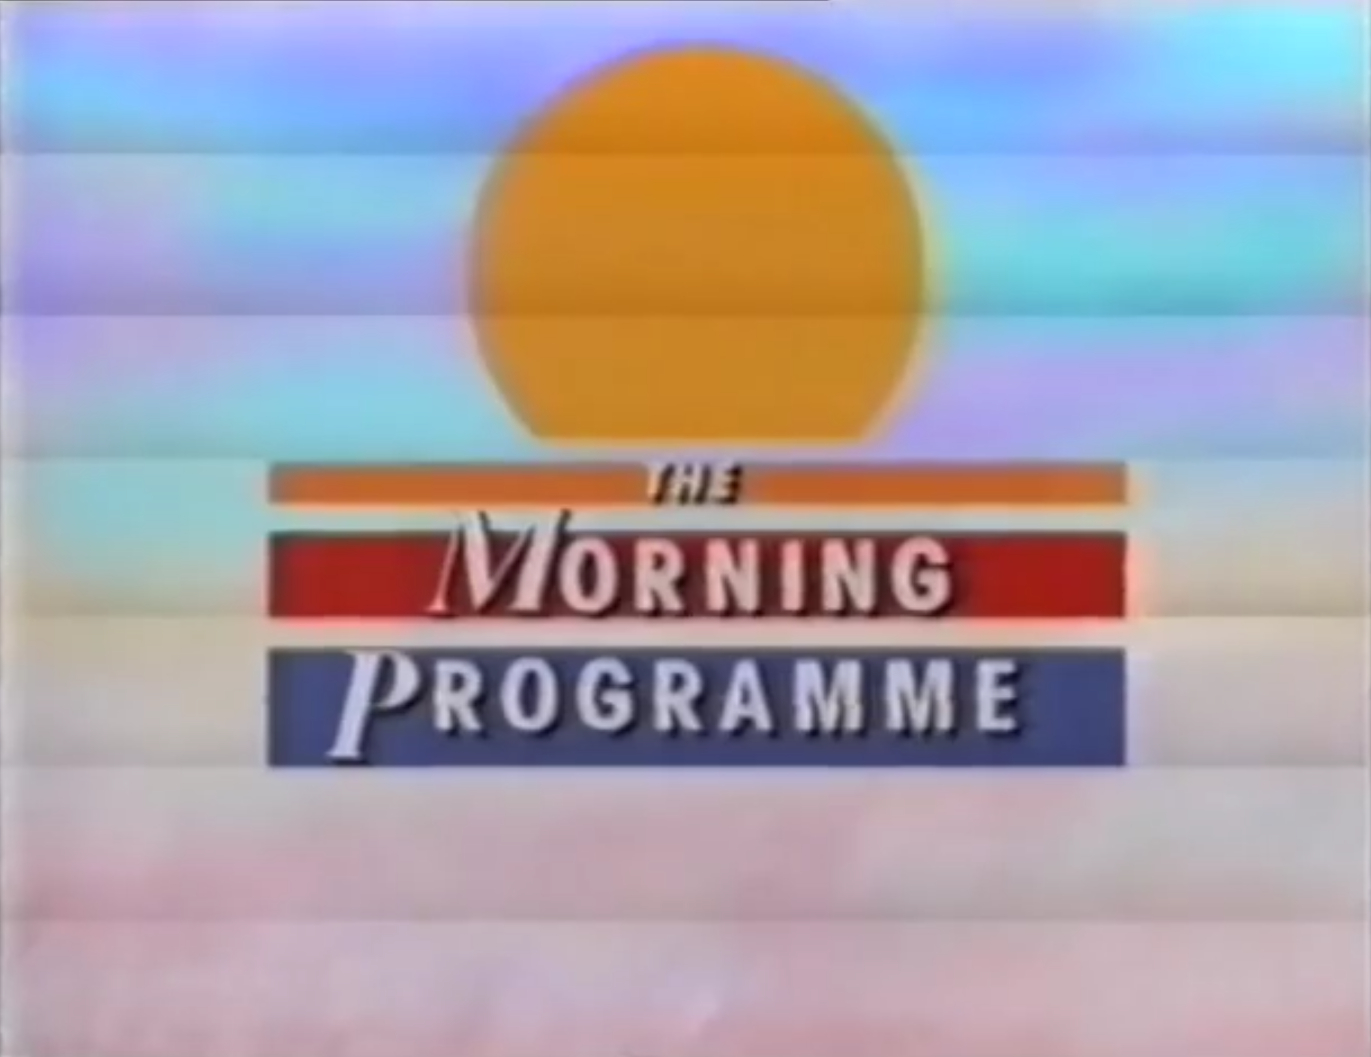 The Morning Programme